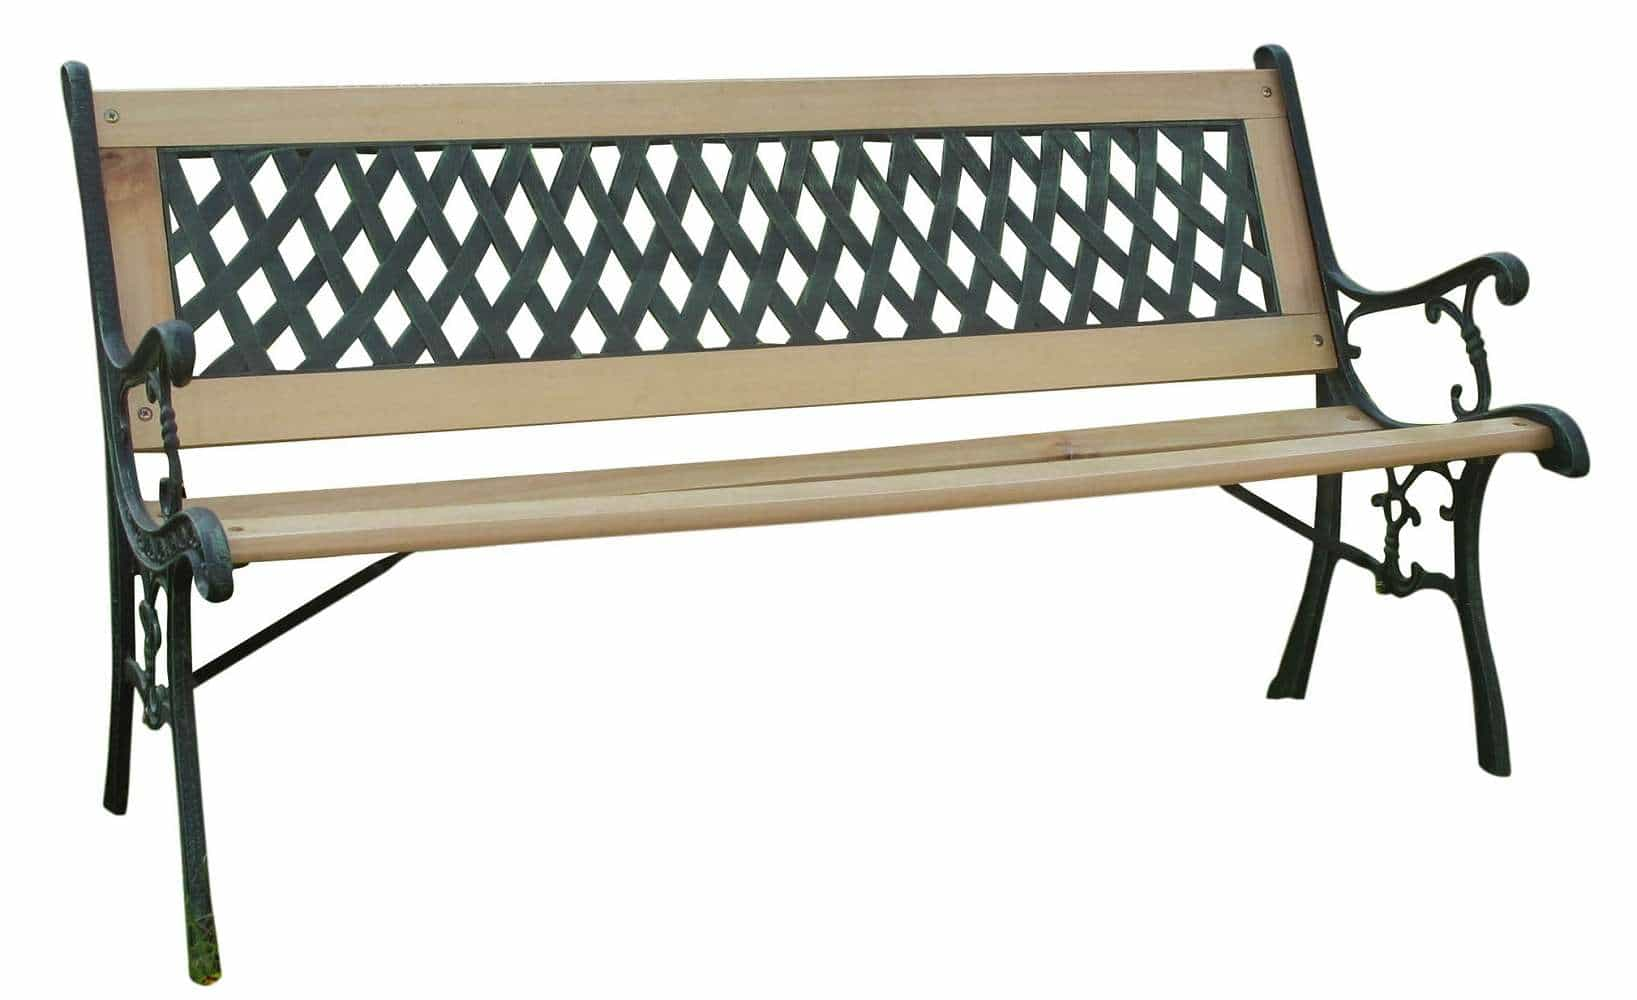 Rattan Corner Sofa Ireland Wooden Bench Garden Furniture Ireland Outdoor Furniture